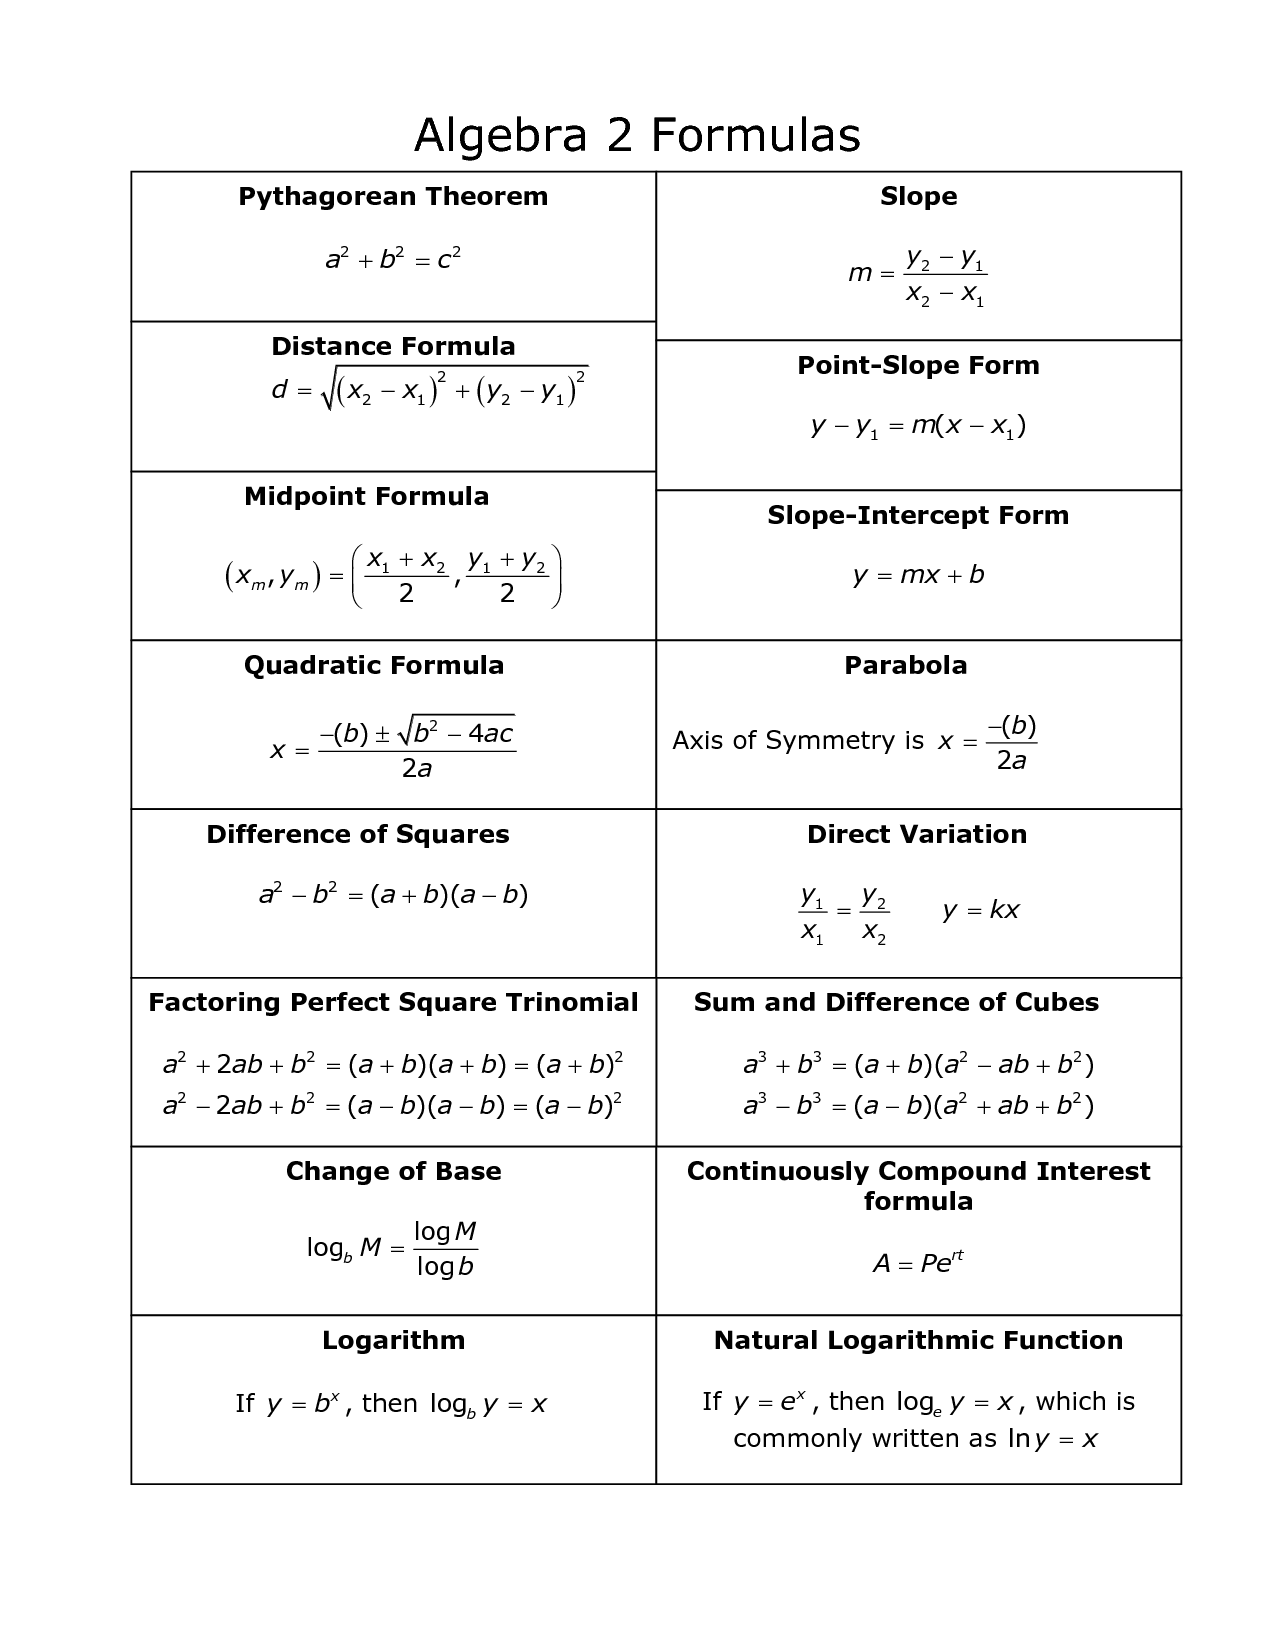 Image Result For Algebra Formula Sheet